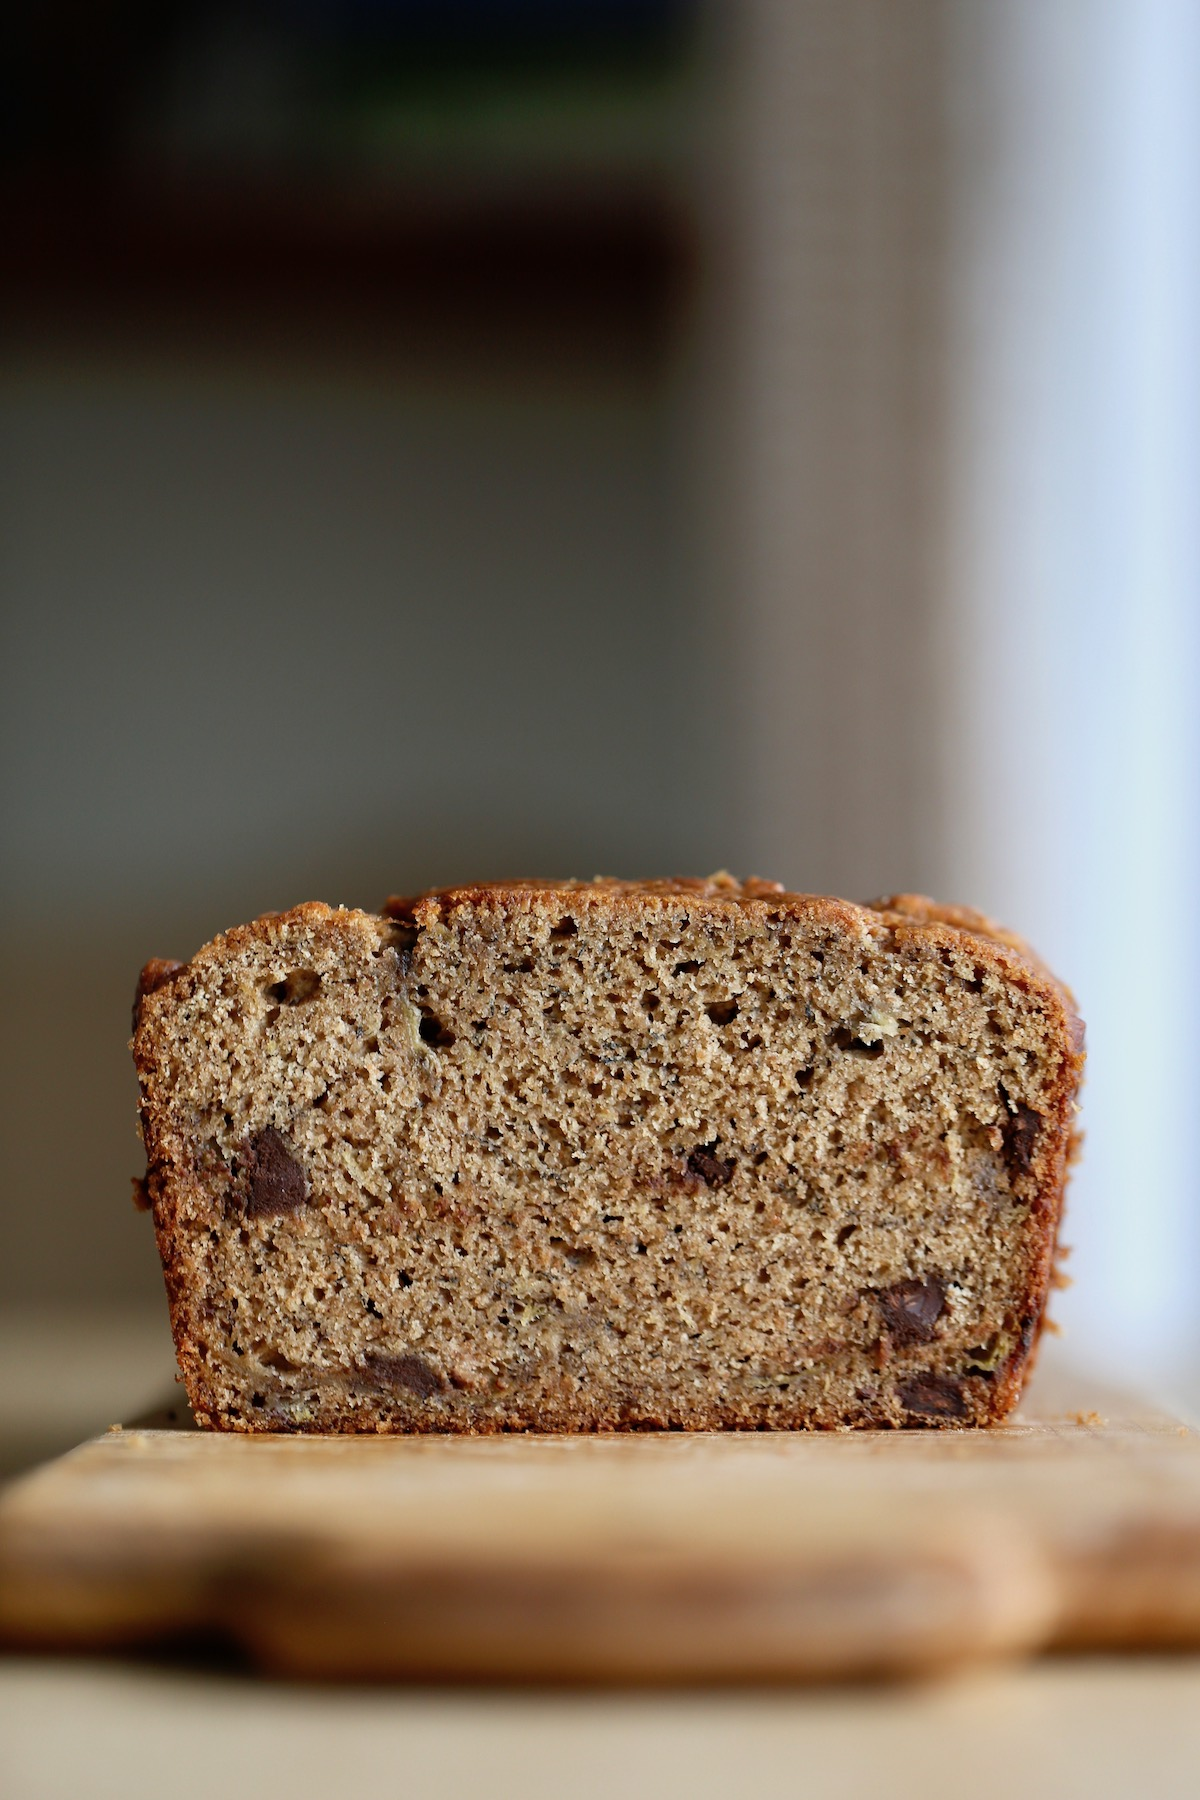 the cross section of a loaf of vegan chocolate chip banana bread on a cutting board